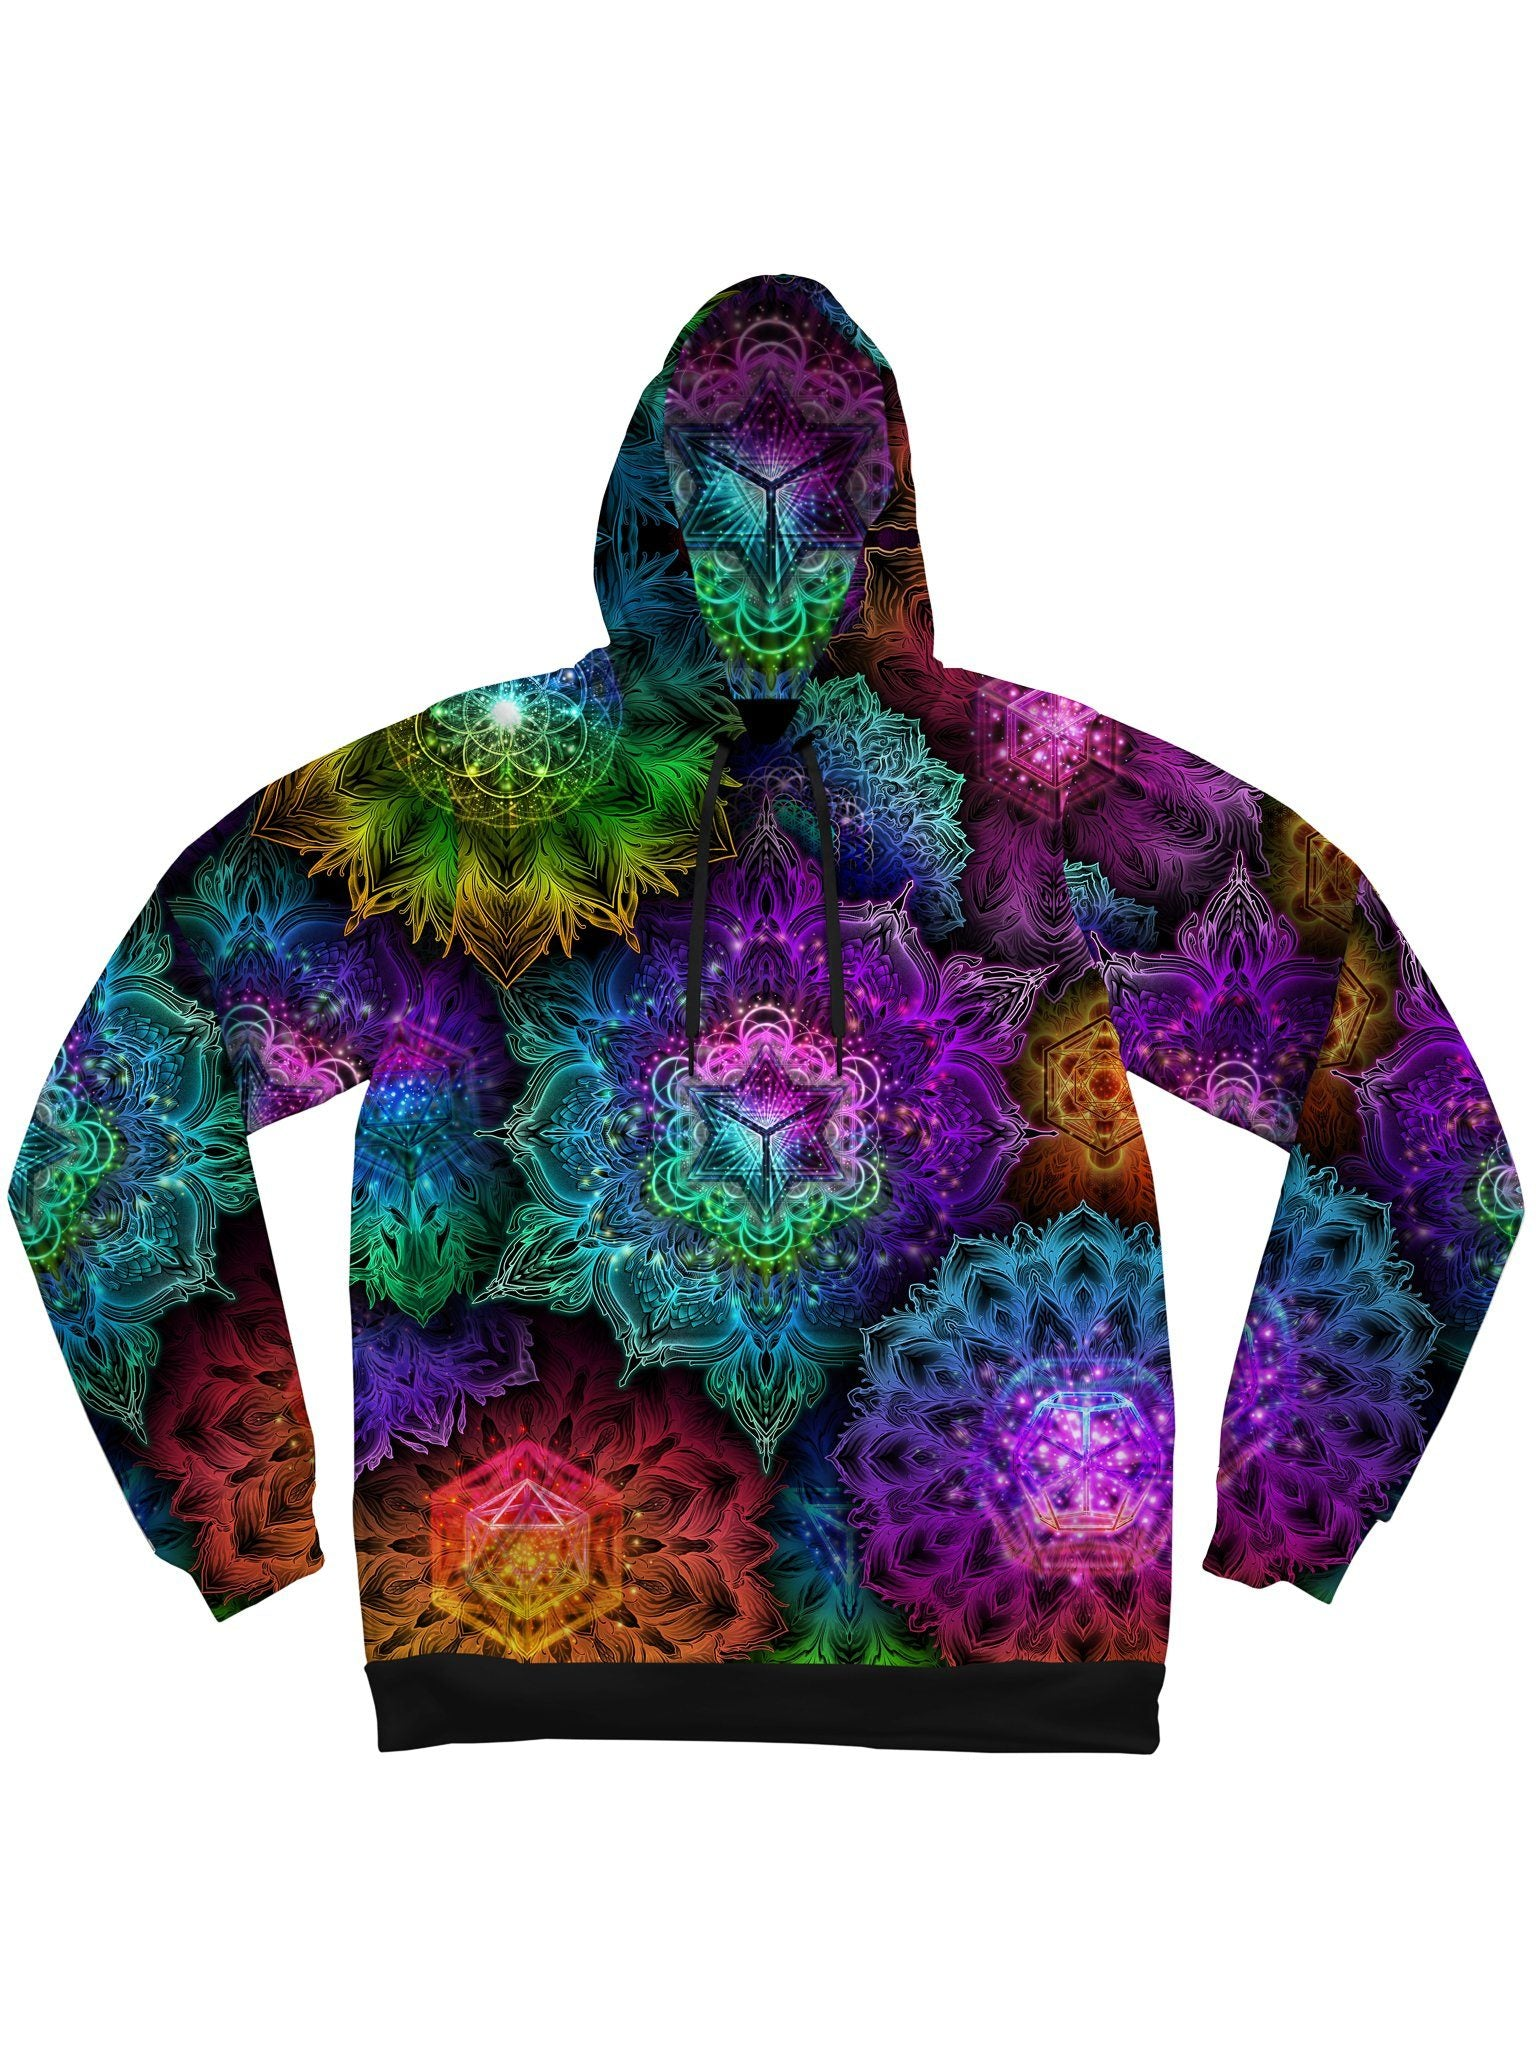 Oneness Unisex Hoodie Pullover Hoodies Electro Threads